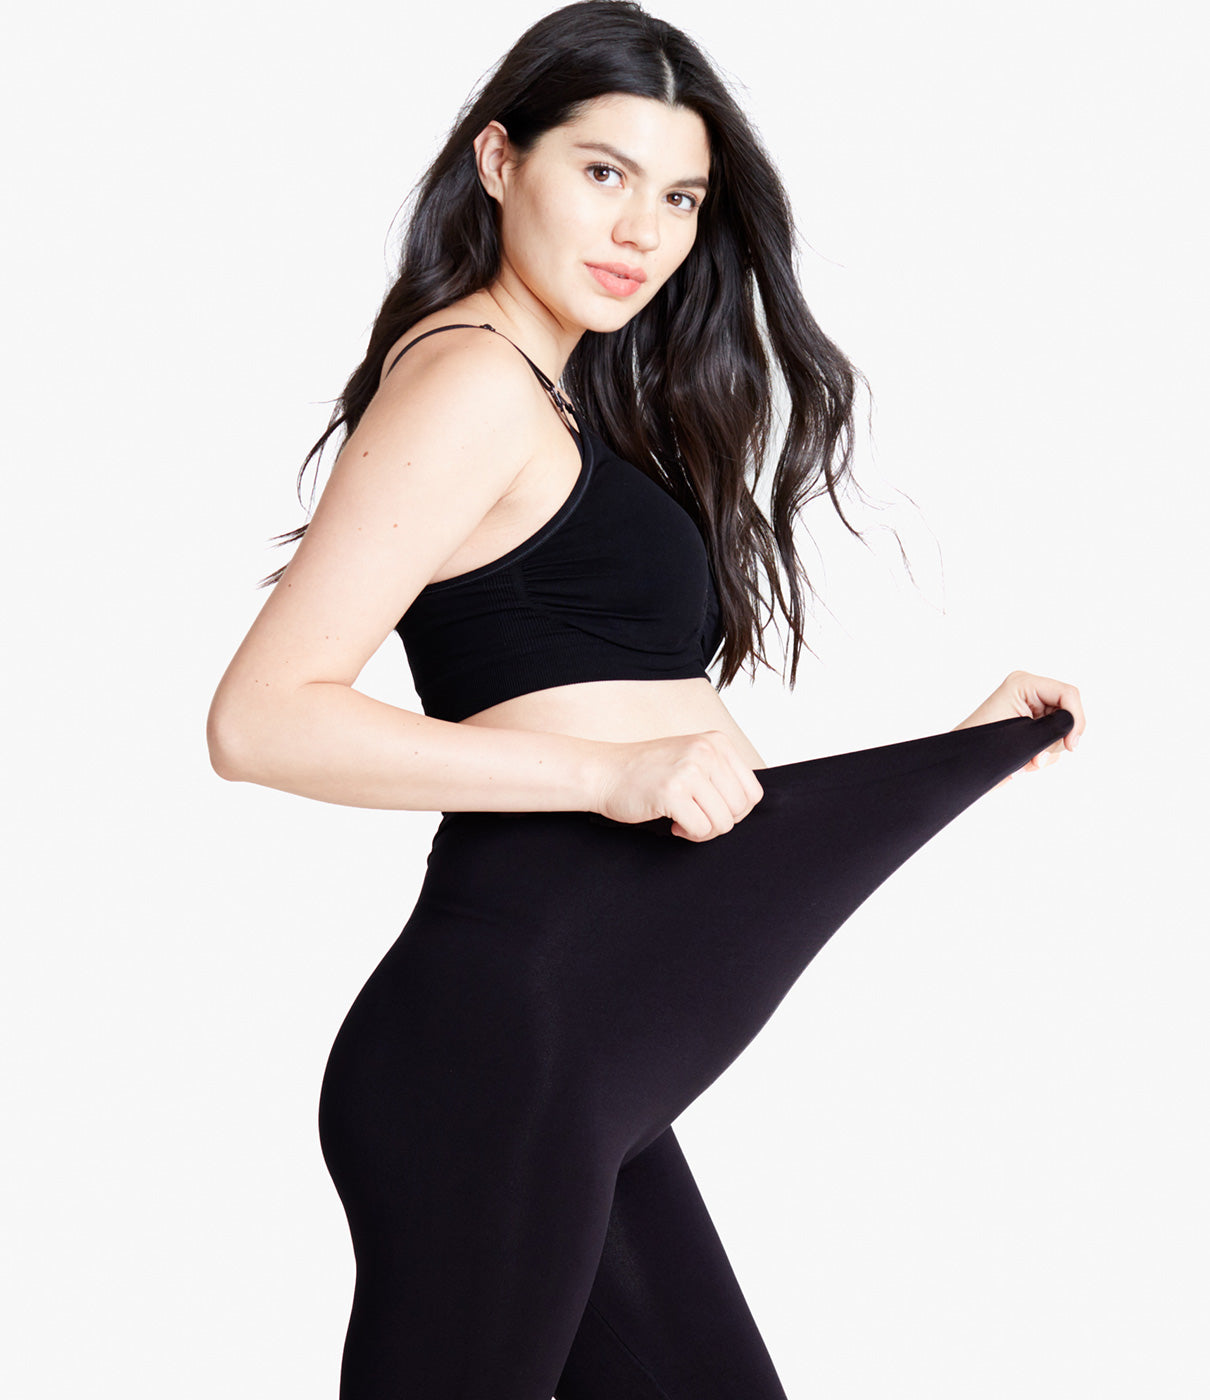 SEAMLESS BELLY LEGGINGSSoft, versatile leggings that can layer with tunics, tops and skirts. Ultra-soft seamless knit with 360° stretch is seam/tag-free for ultimate comfort.